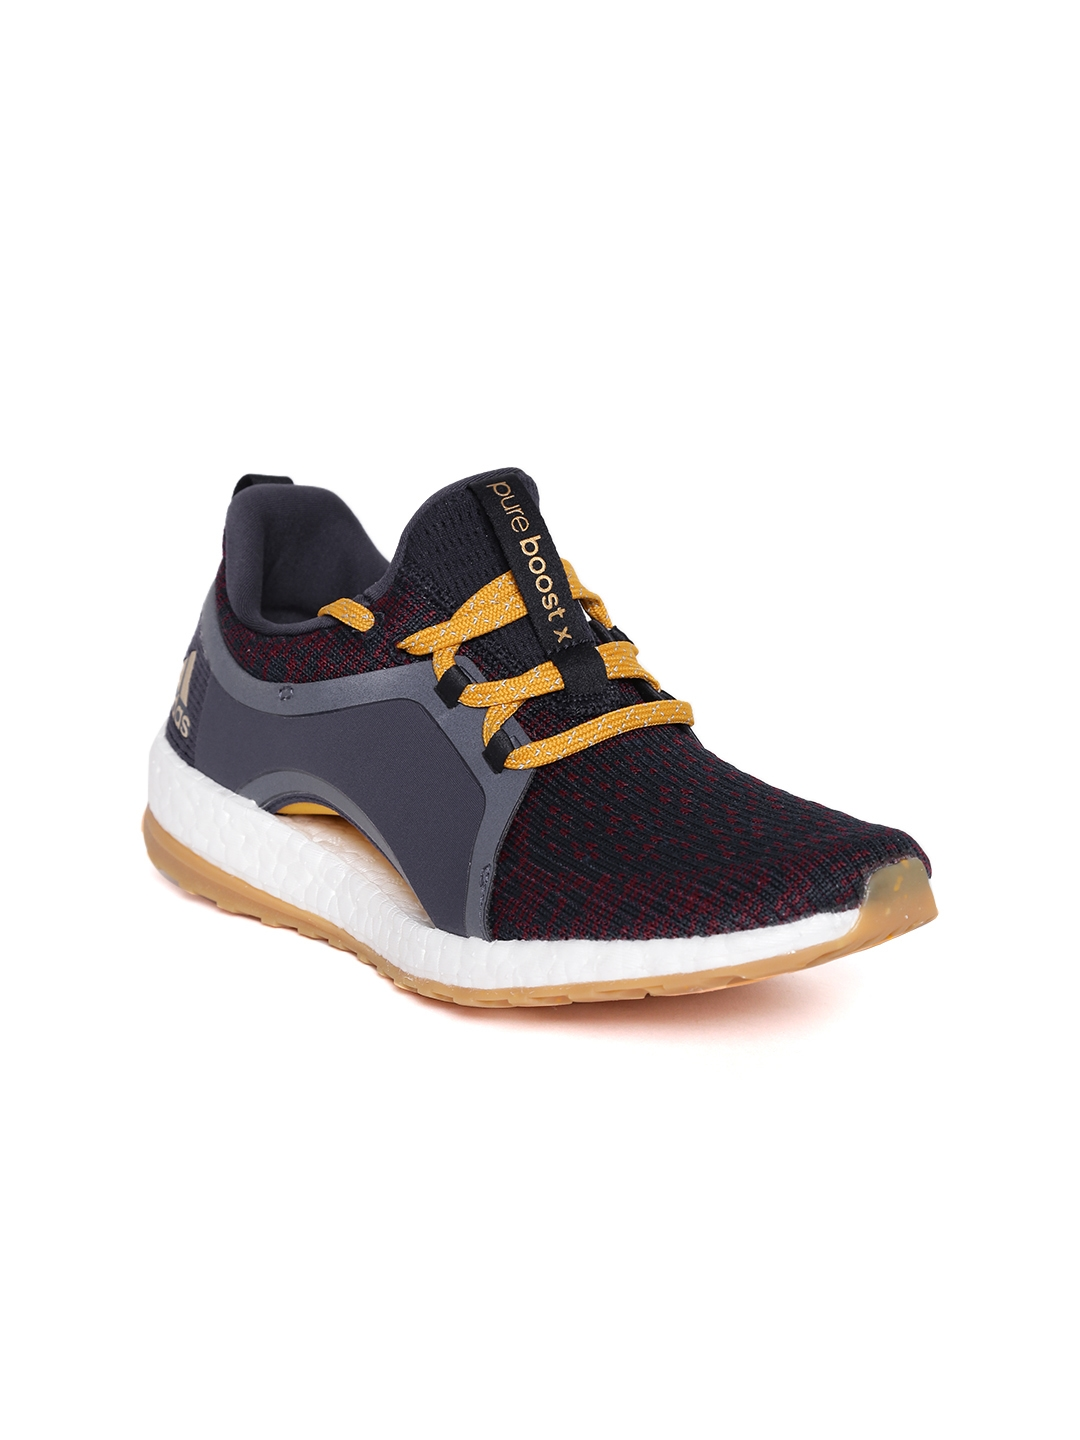 d912fc7723f1b ... get adidas women navy maroon pureboost x all terrain running shoes  6b641 ad662